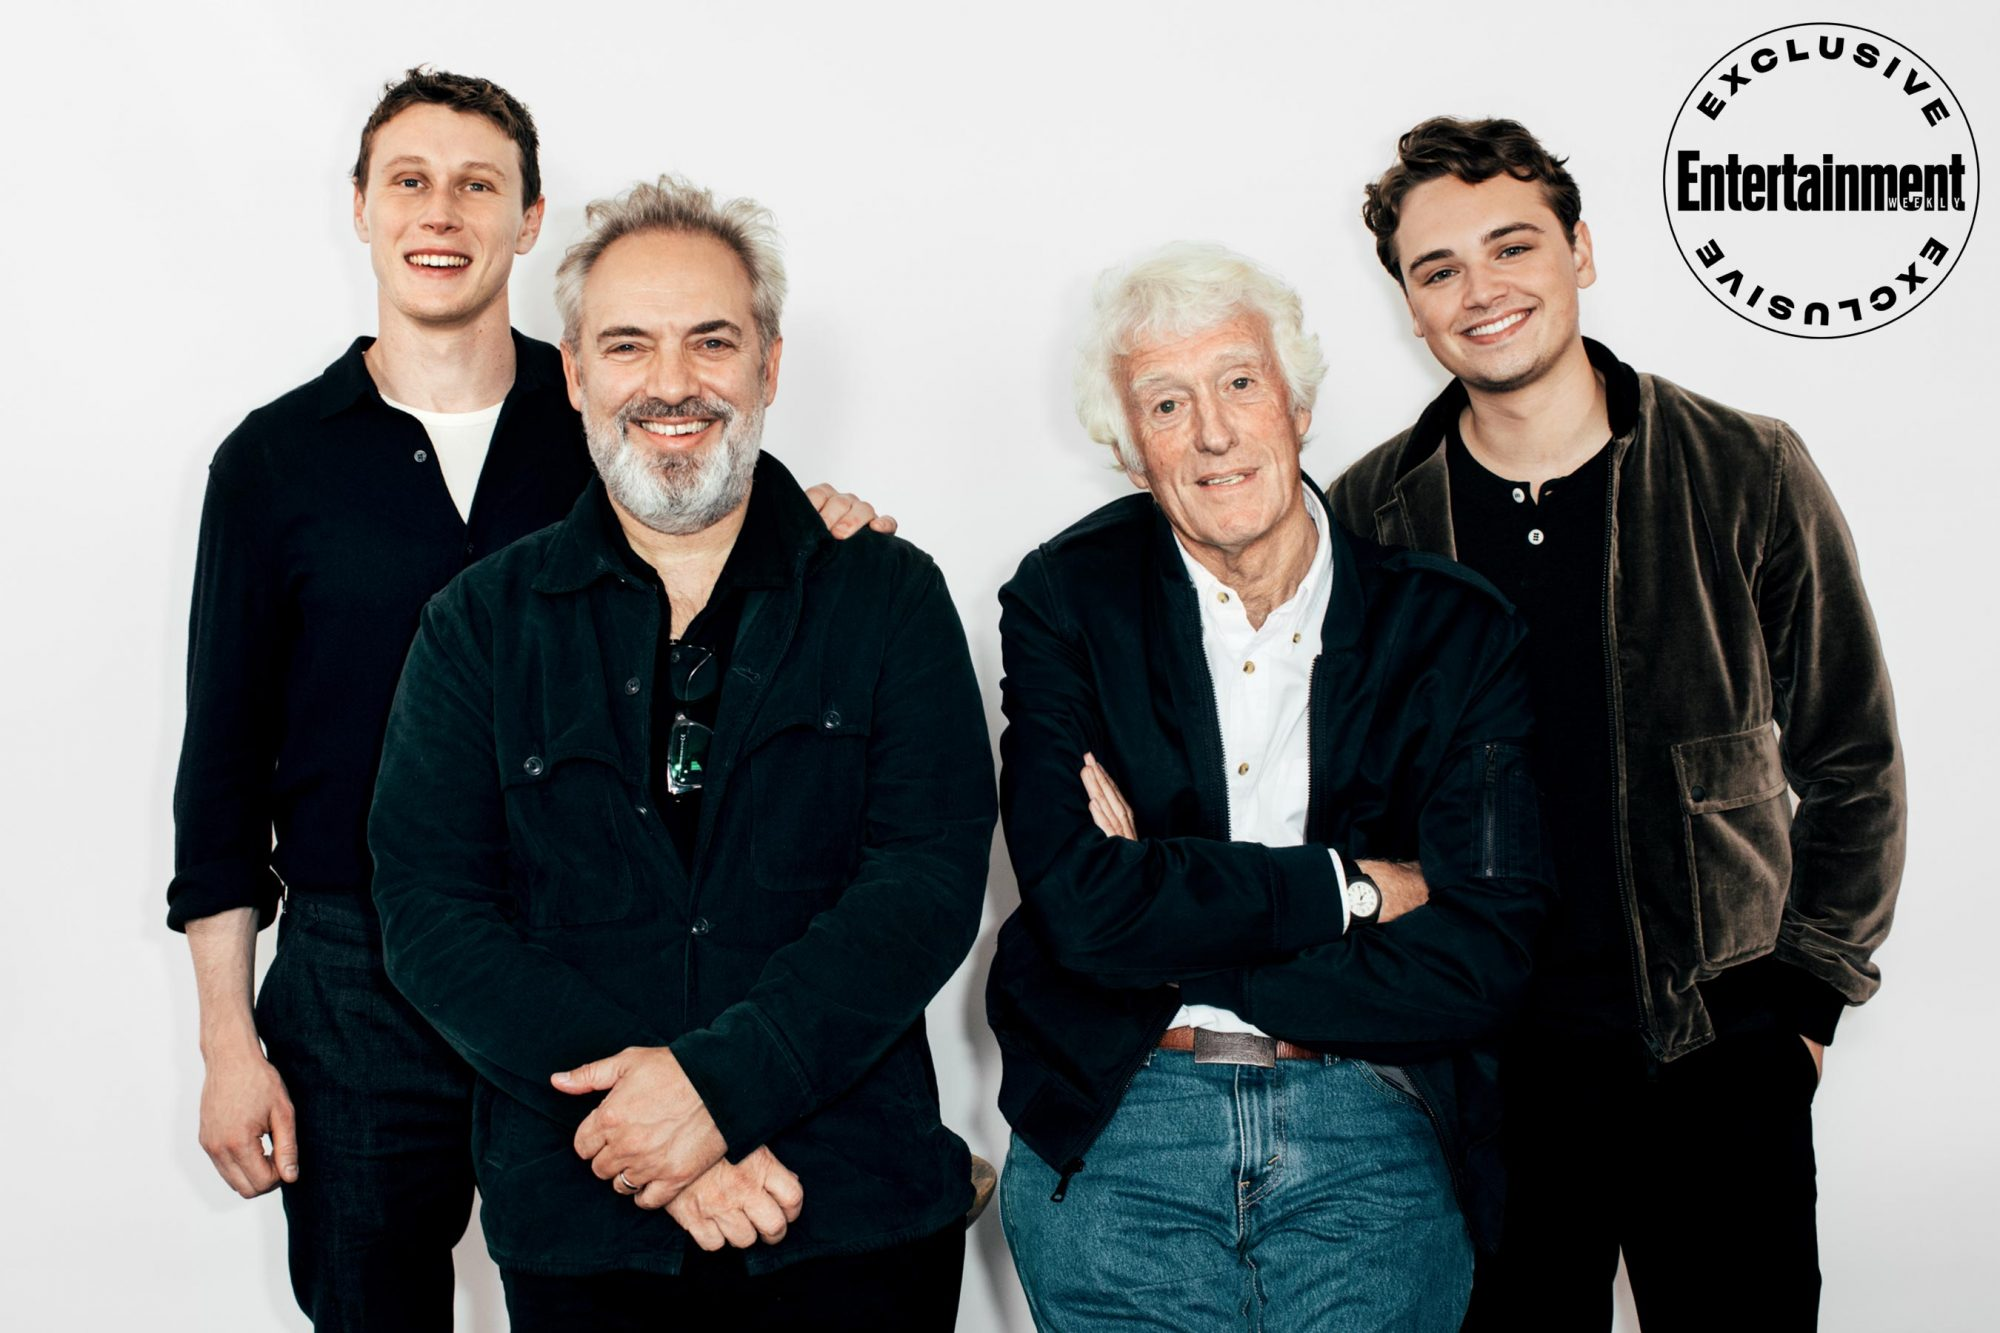 George MacKay, Sam Mendes, Roger Deakins, and Dean-Charles Chapman from 1917